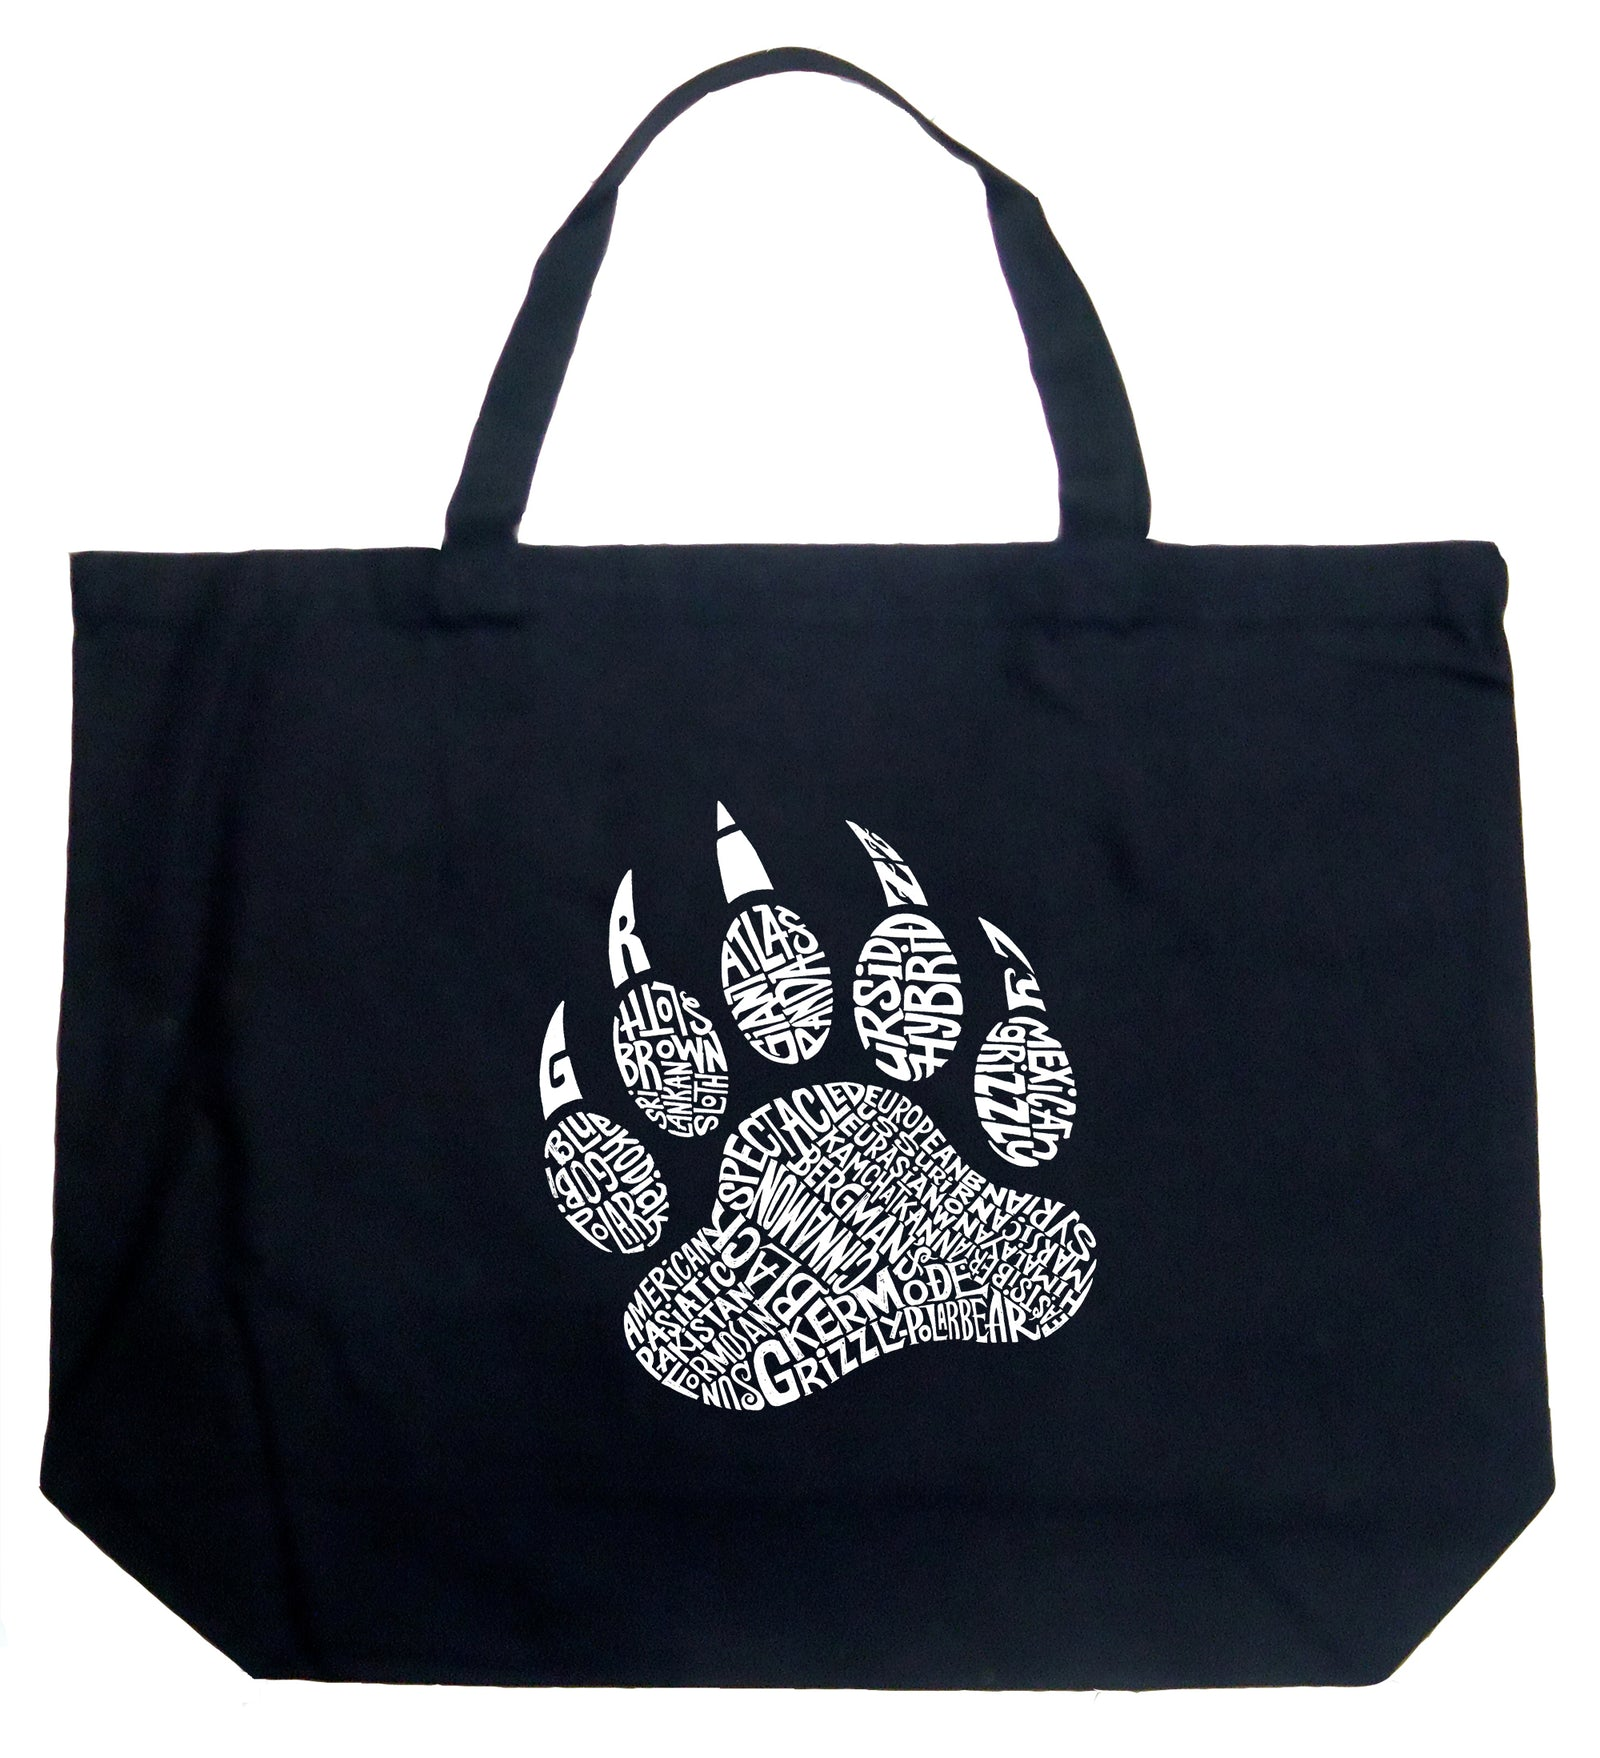 Large Word Art Tote Bag - Types of Bears